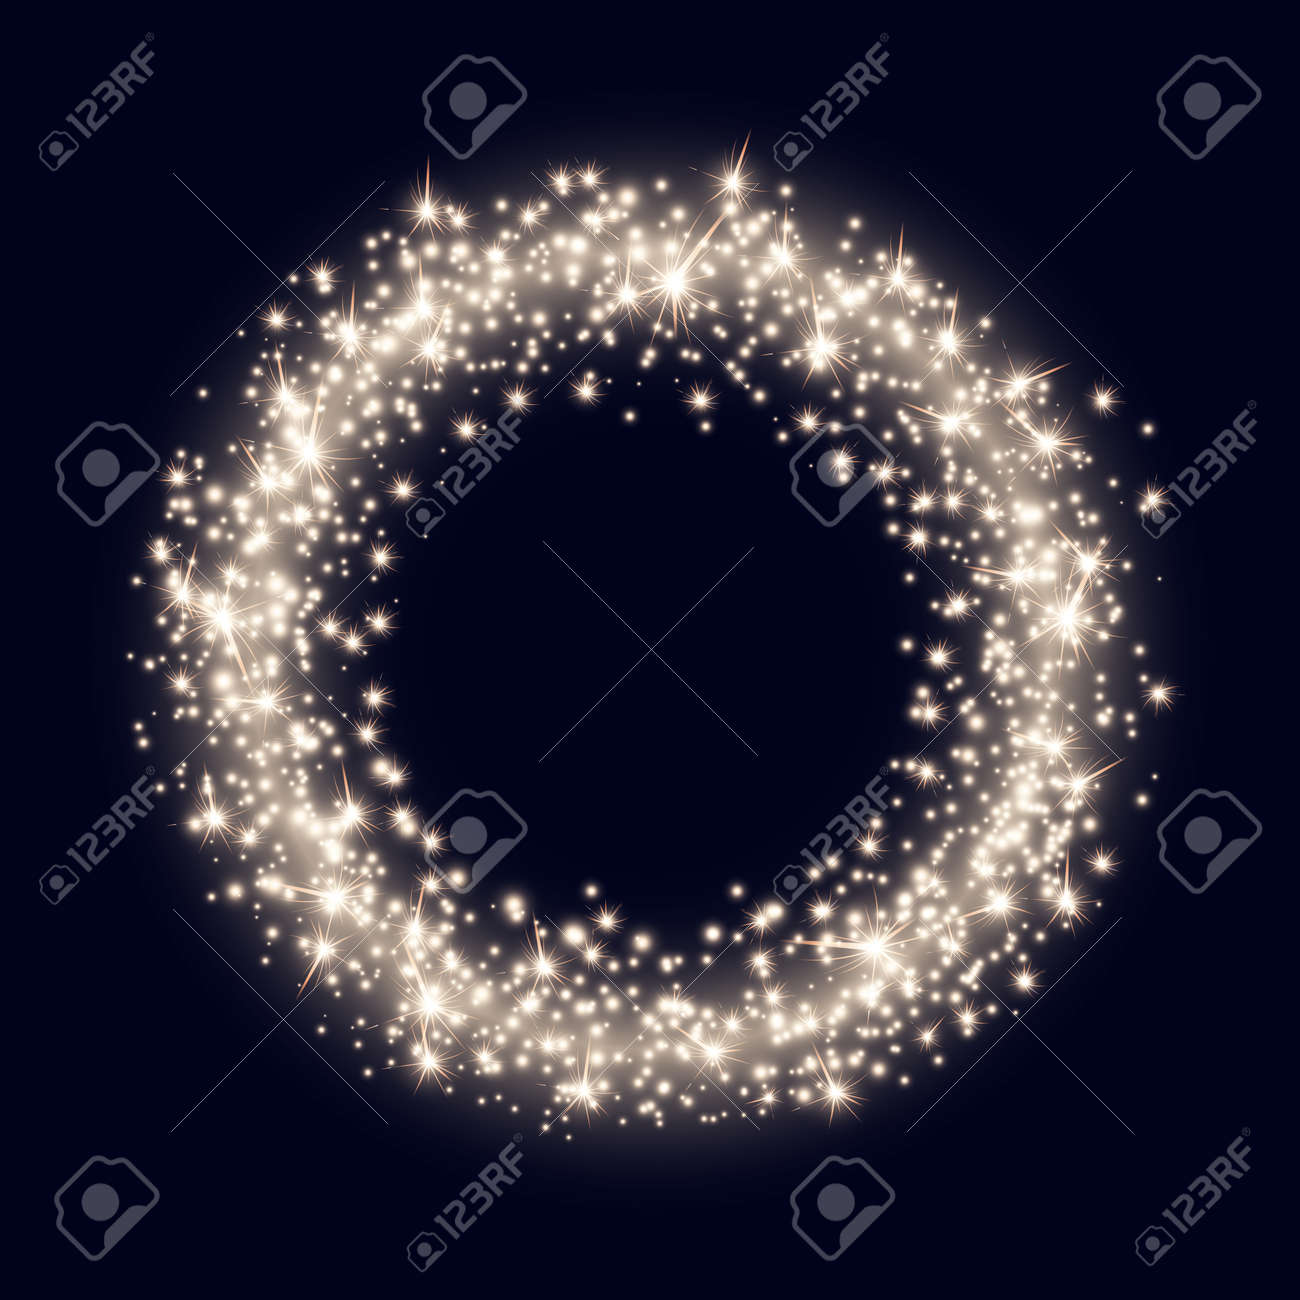 Vector Backdrop with Abstract Bright Sparkling Golden Ring on Dark Blue Background - 50705975